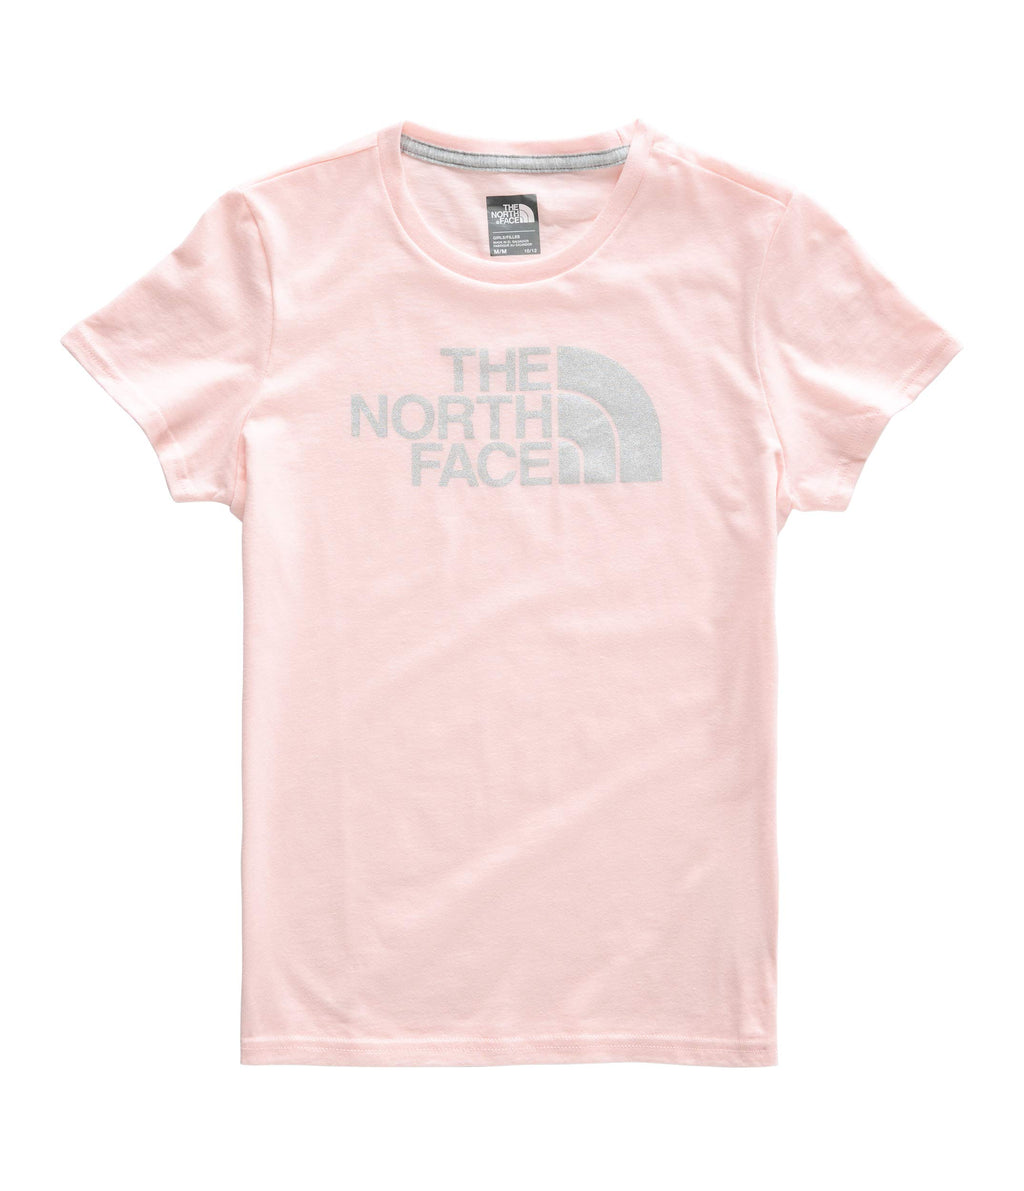 The North Face Kids Girl's Short Sleeve Graphic Tee.